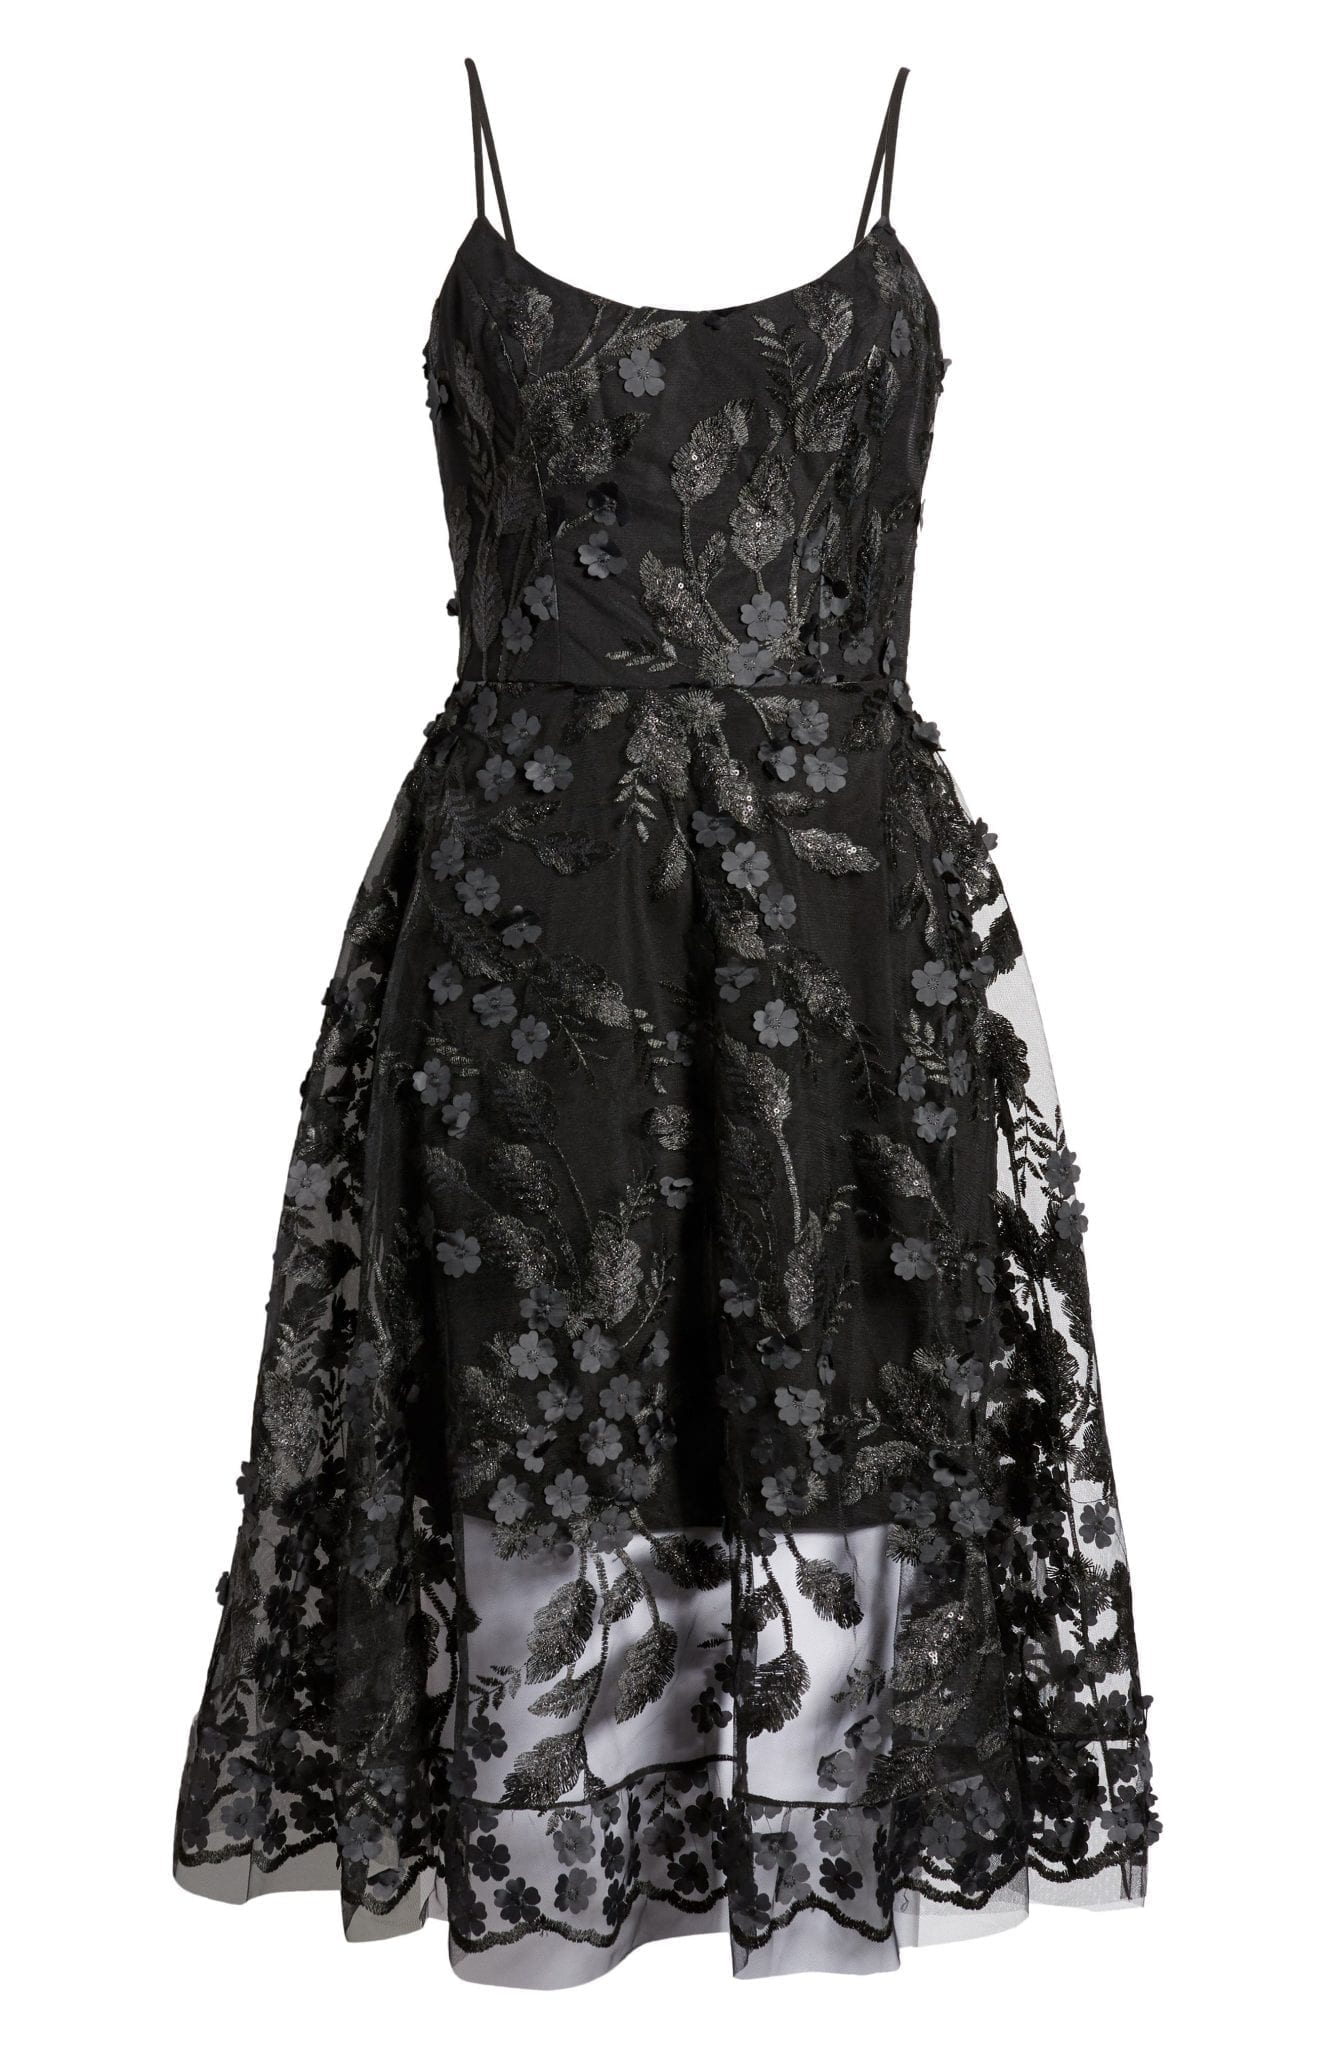 DRESS THE POPULATION 3D Lace Fit & Flare Dress